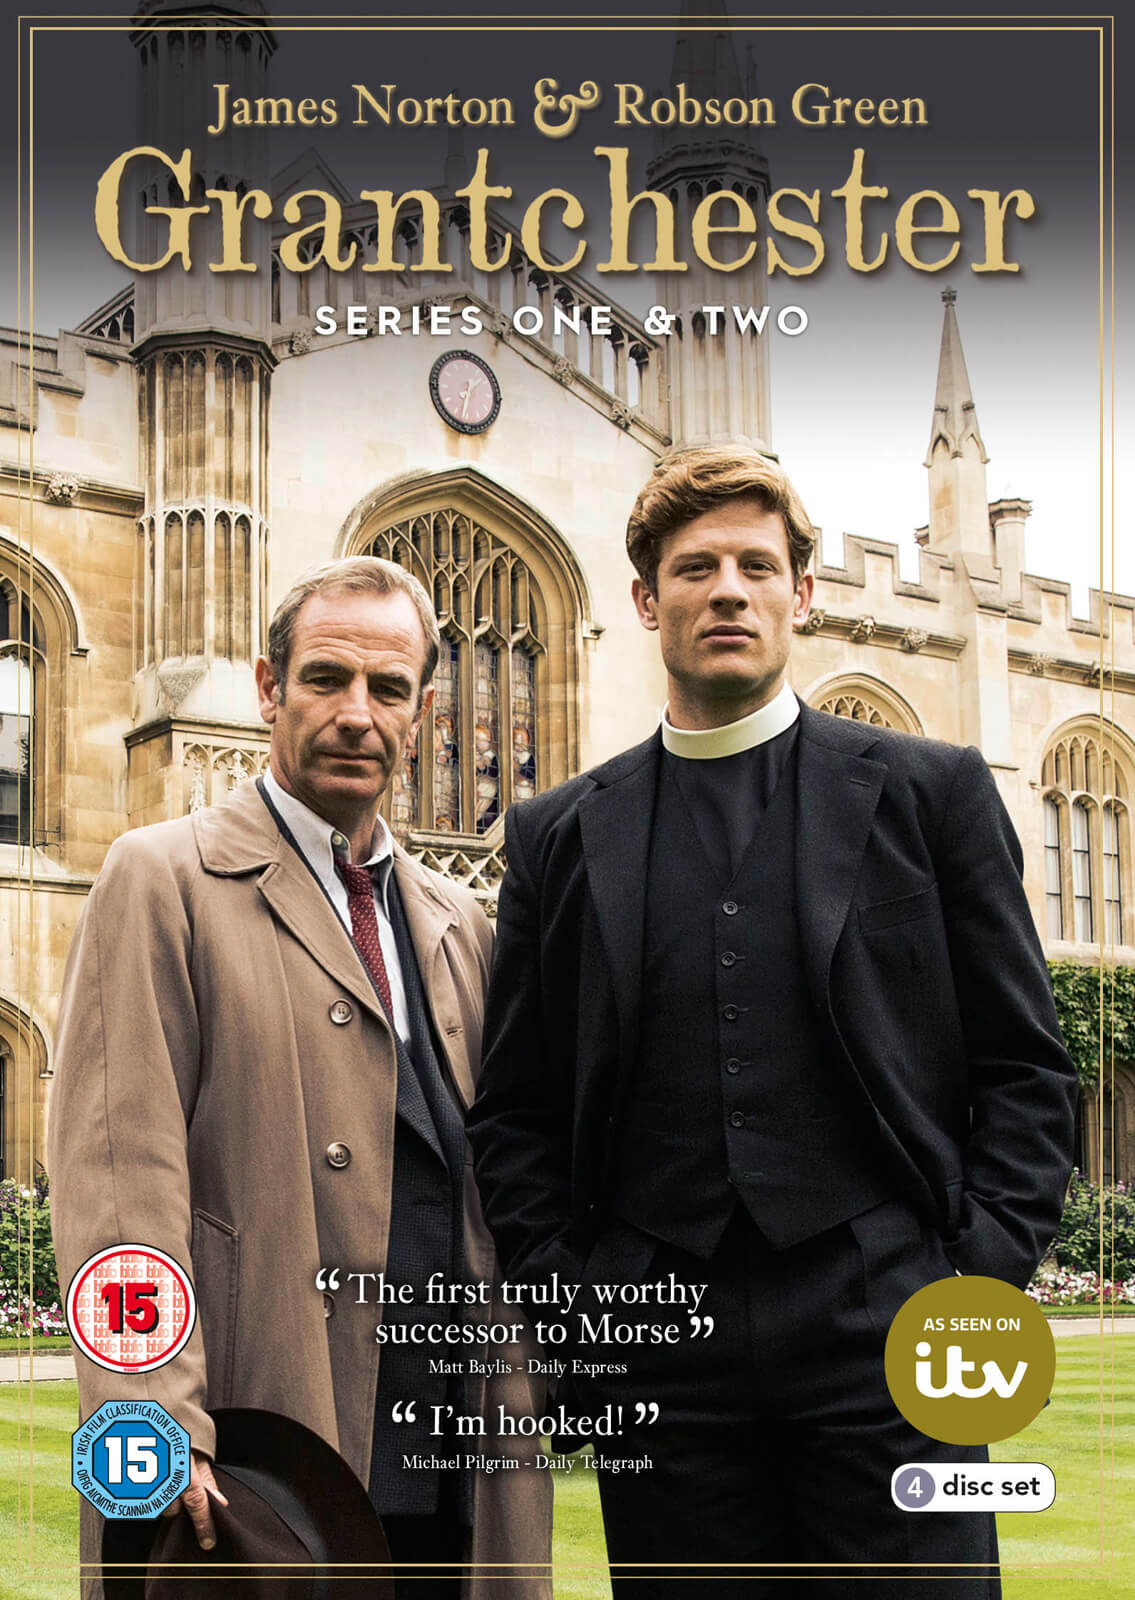 Grantchester - Series 1 & 2 Boxed Set